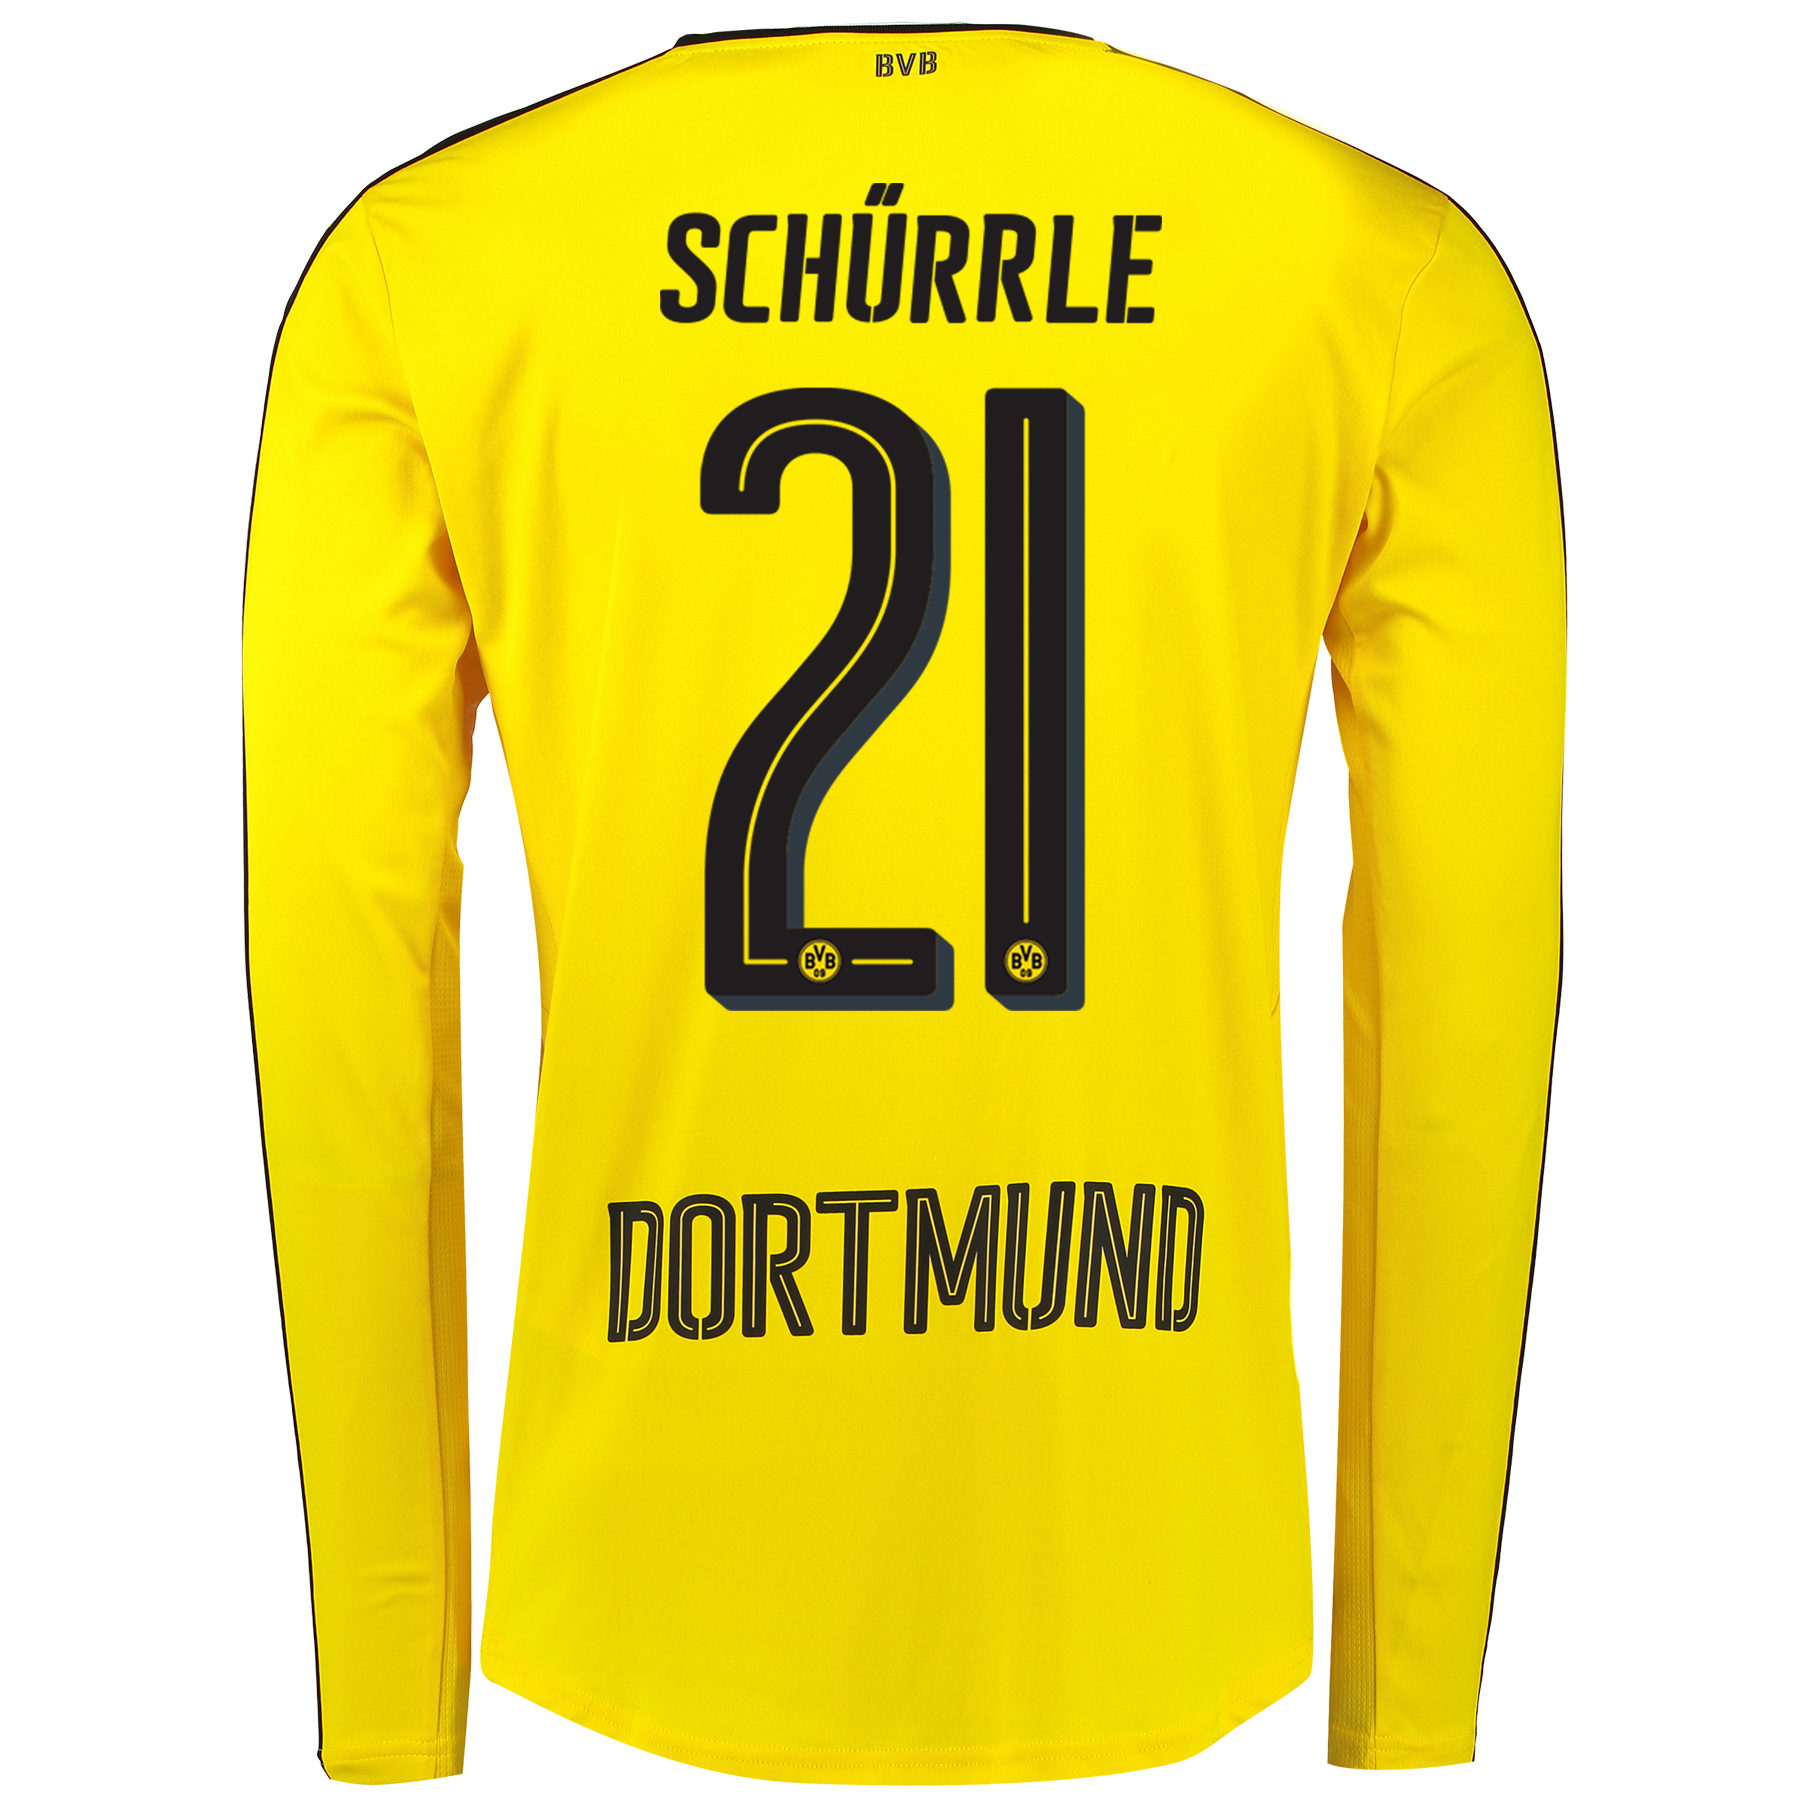 Image of BVB Home Shirt 2016-17 - Long Sleeve with Schürrle 21 printing, Yellow/Black